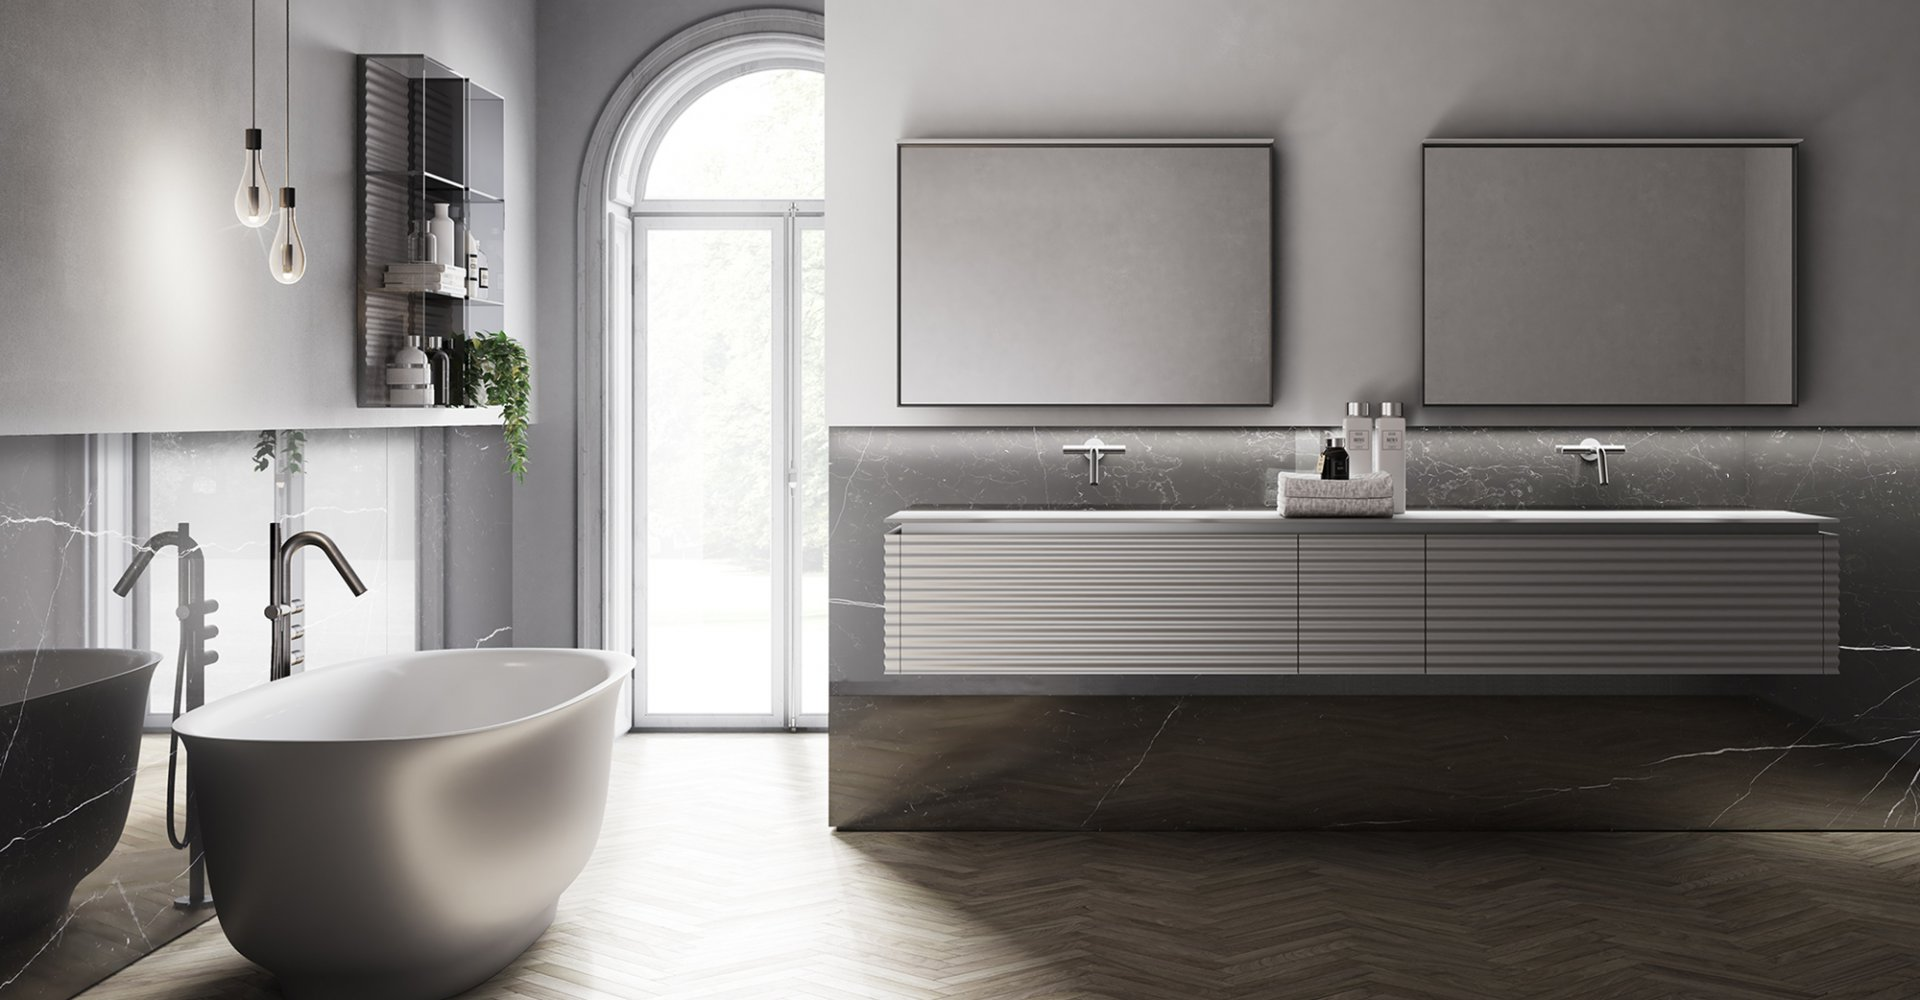 ideagroup-website-bathroom-render